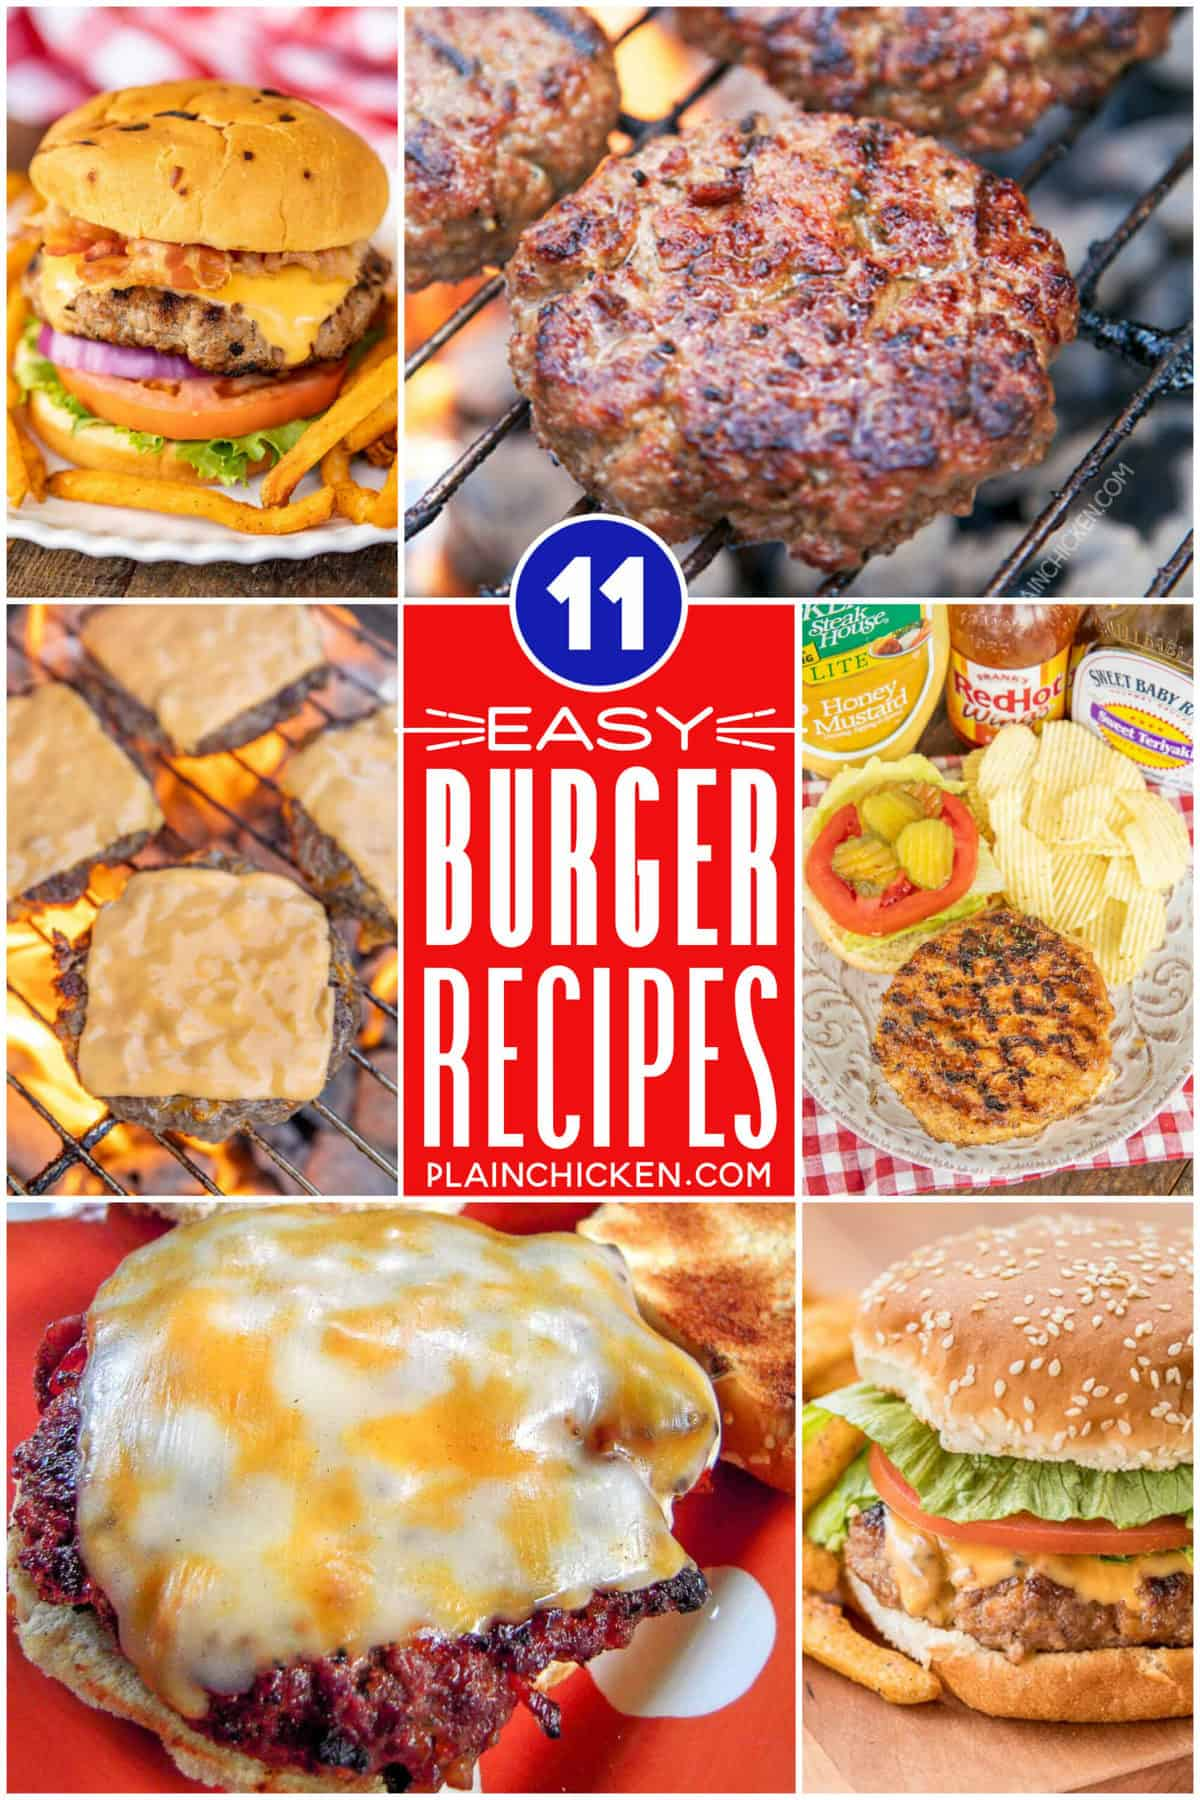 Easy Burger Recipes Plain Chicken